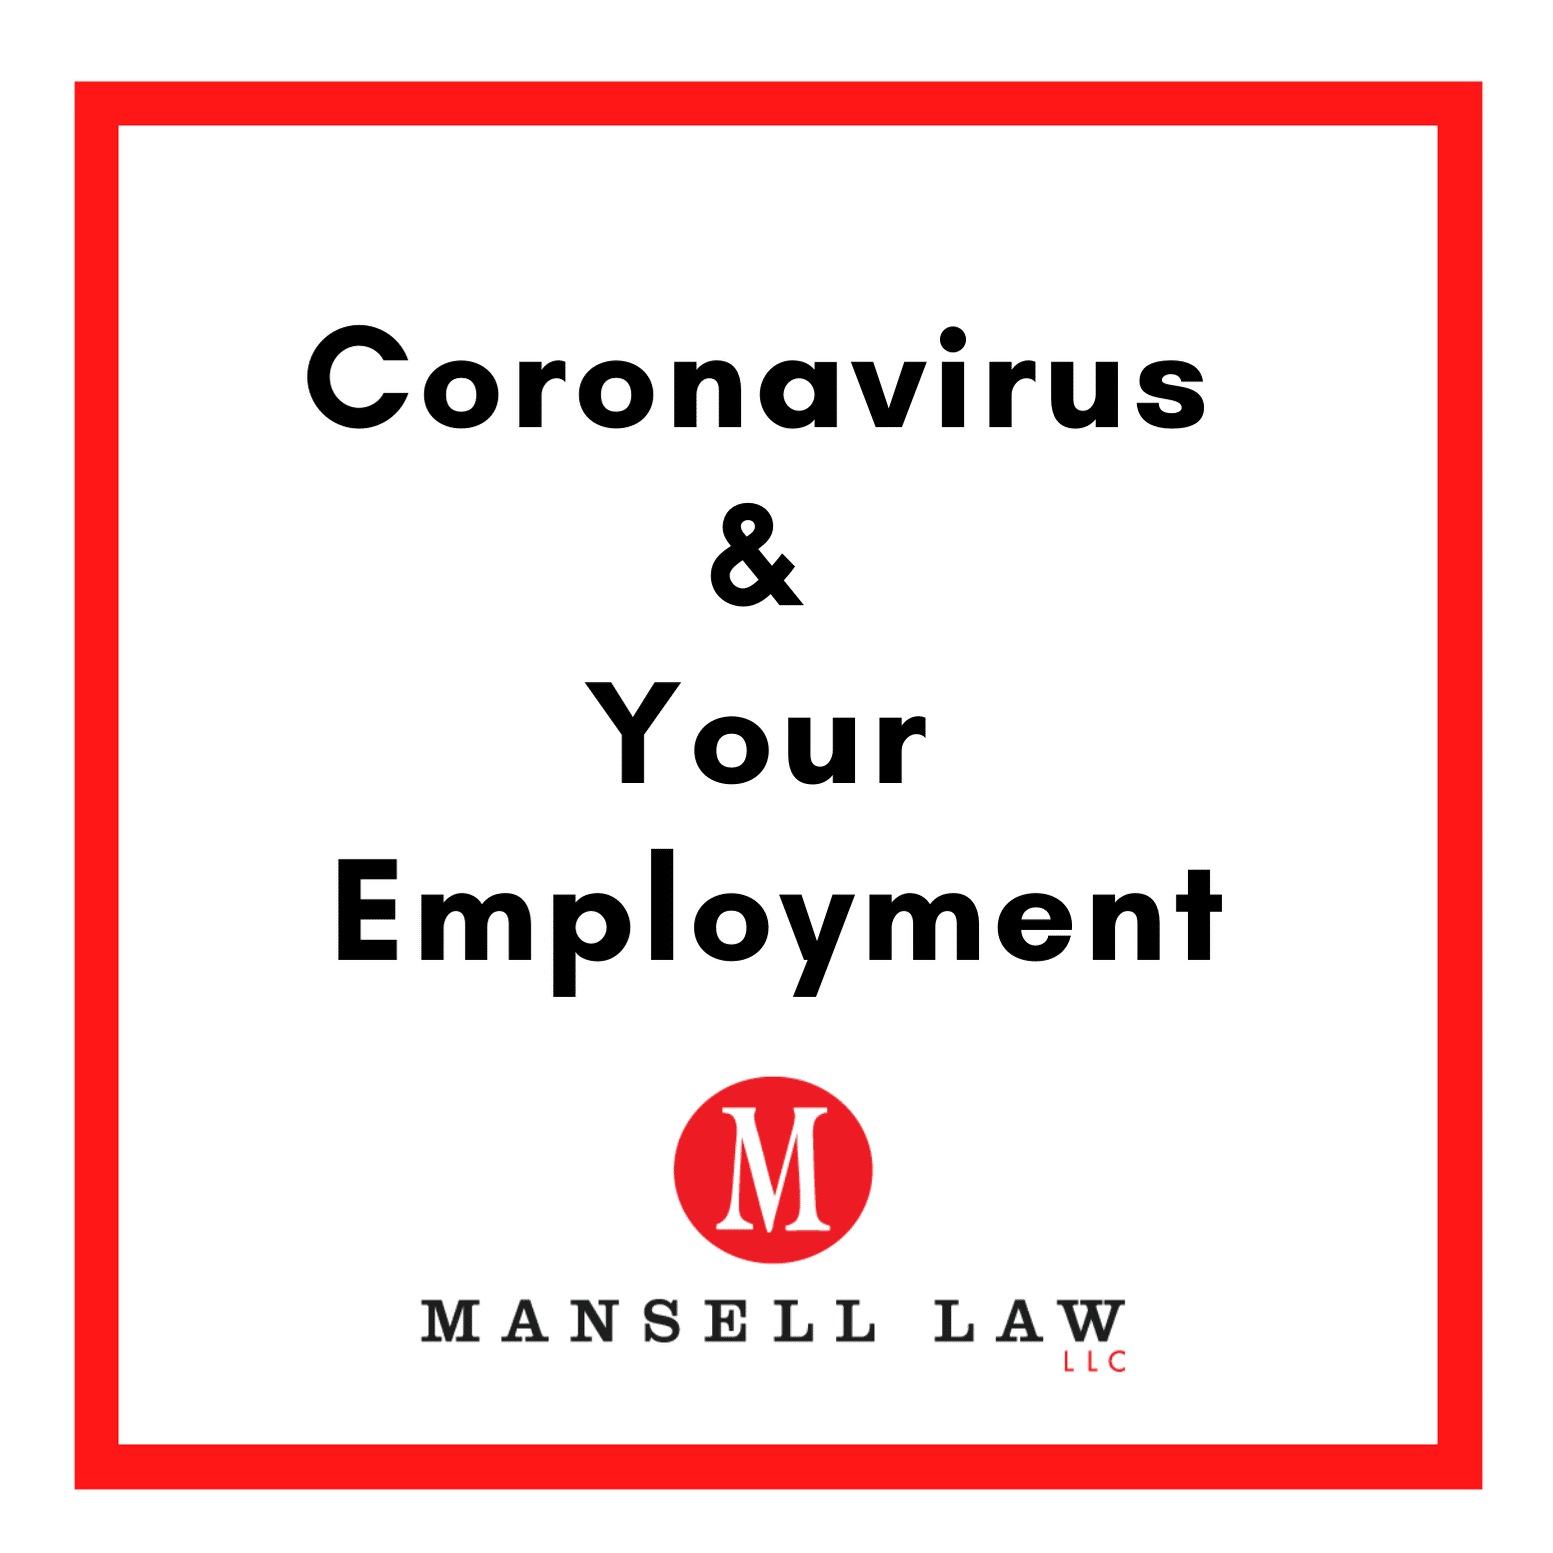 Corona virus and employment laws